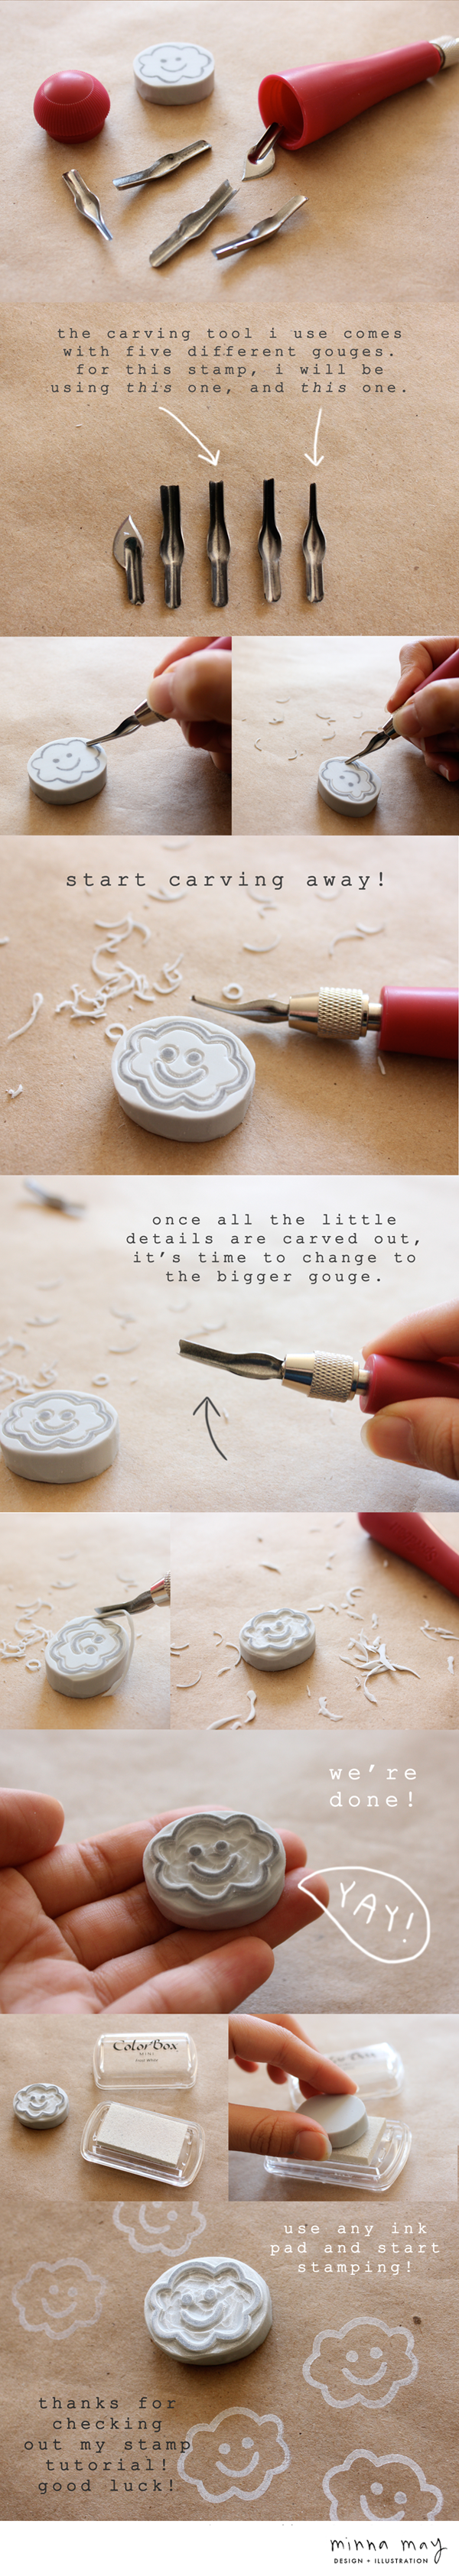 Hand carved stamp tutorial minna may design